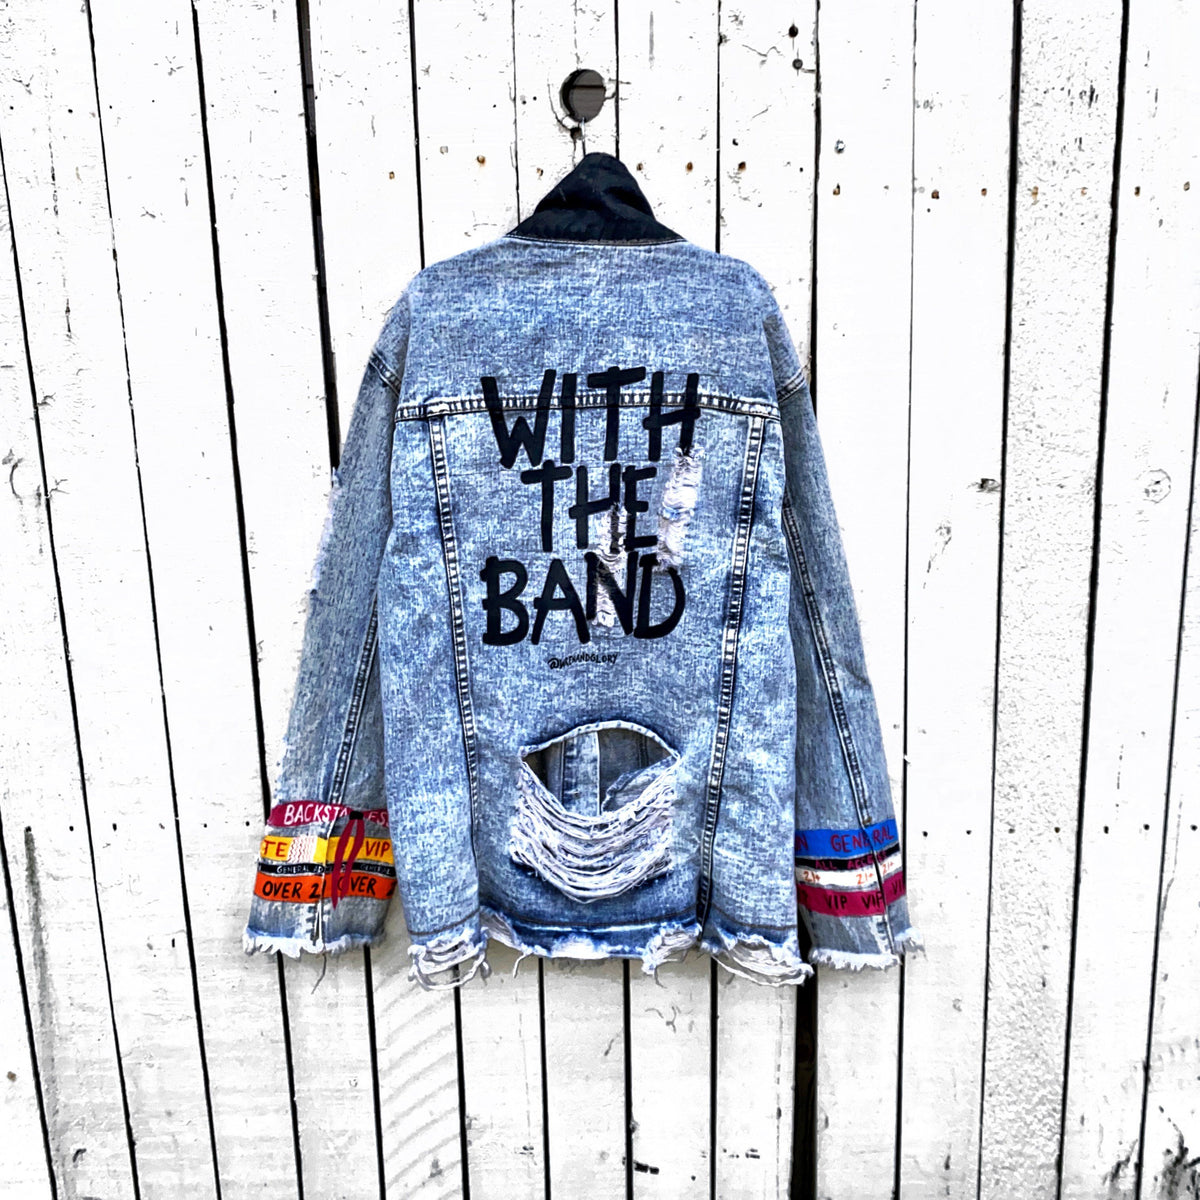 Medium blue denim wash. Festival bracelets painted up the sleeves on each side of jacket, with 'WITH THE BAND' painted in black on back.  Front pockets and collar painted black. Signed @wrenandglory.